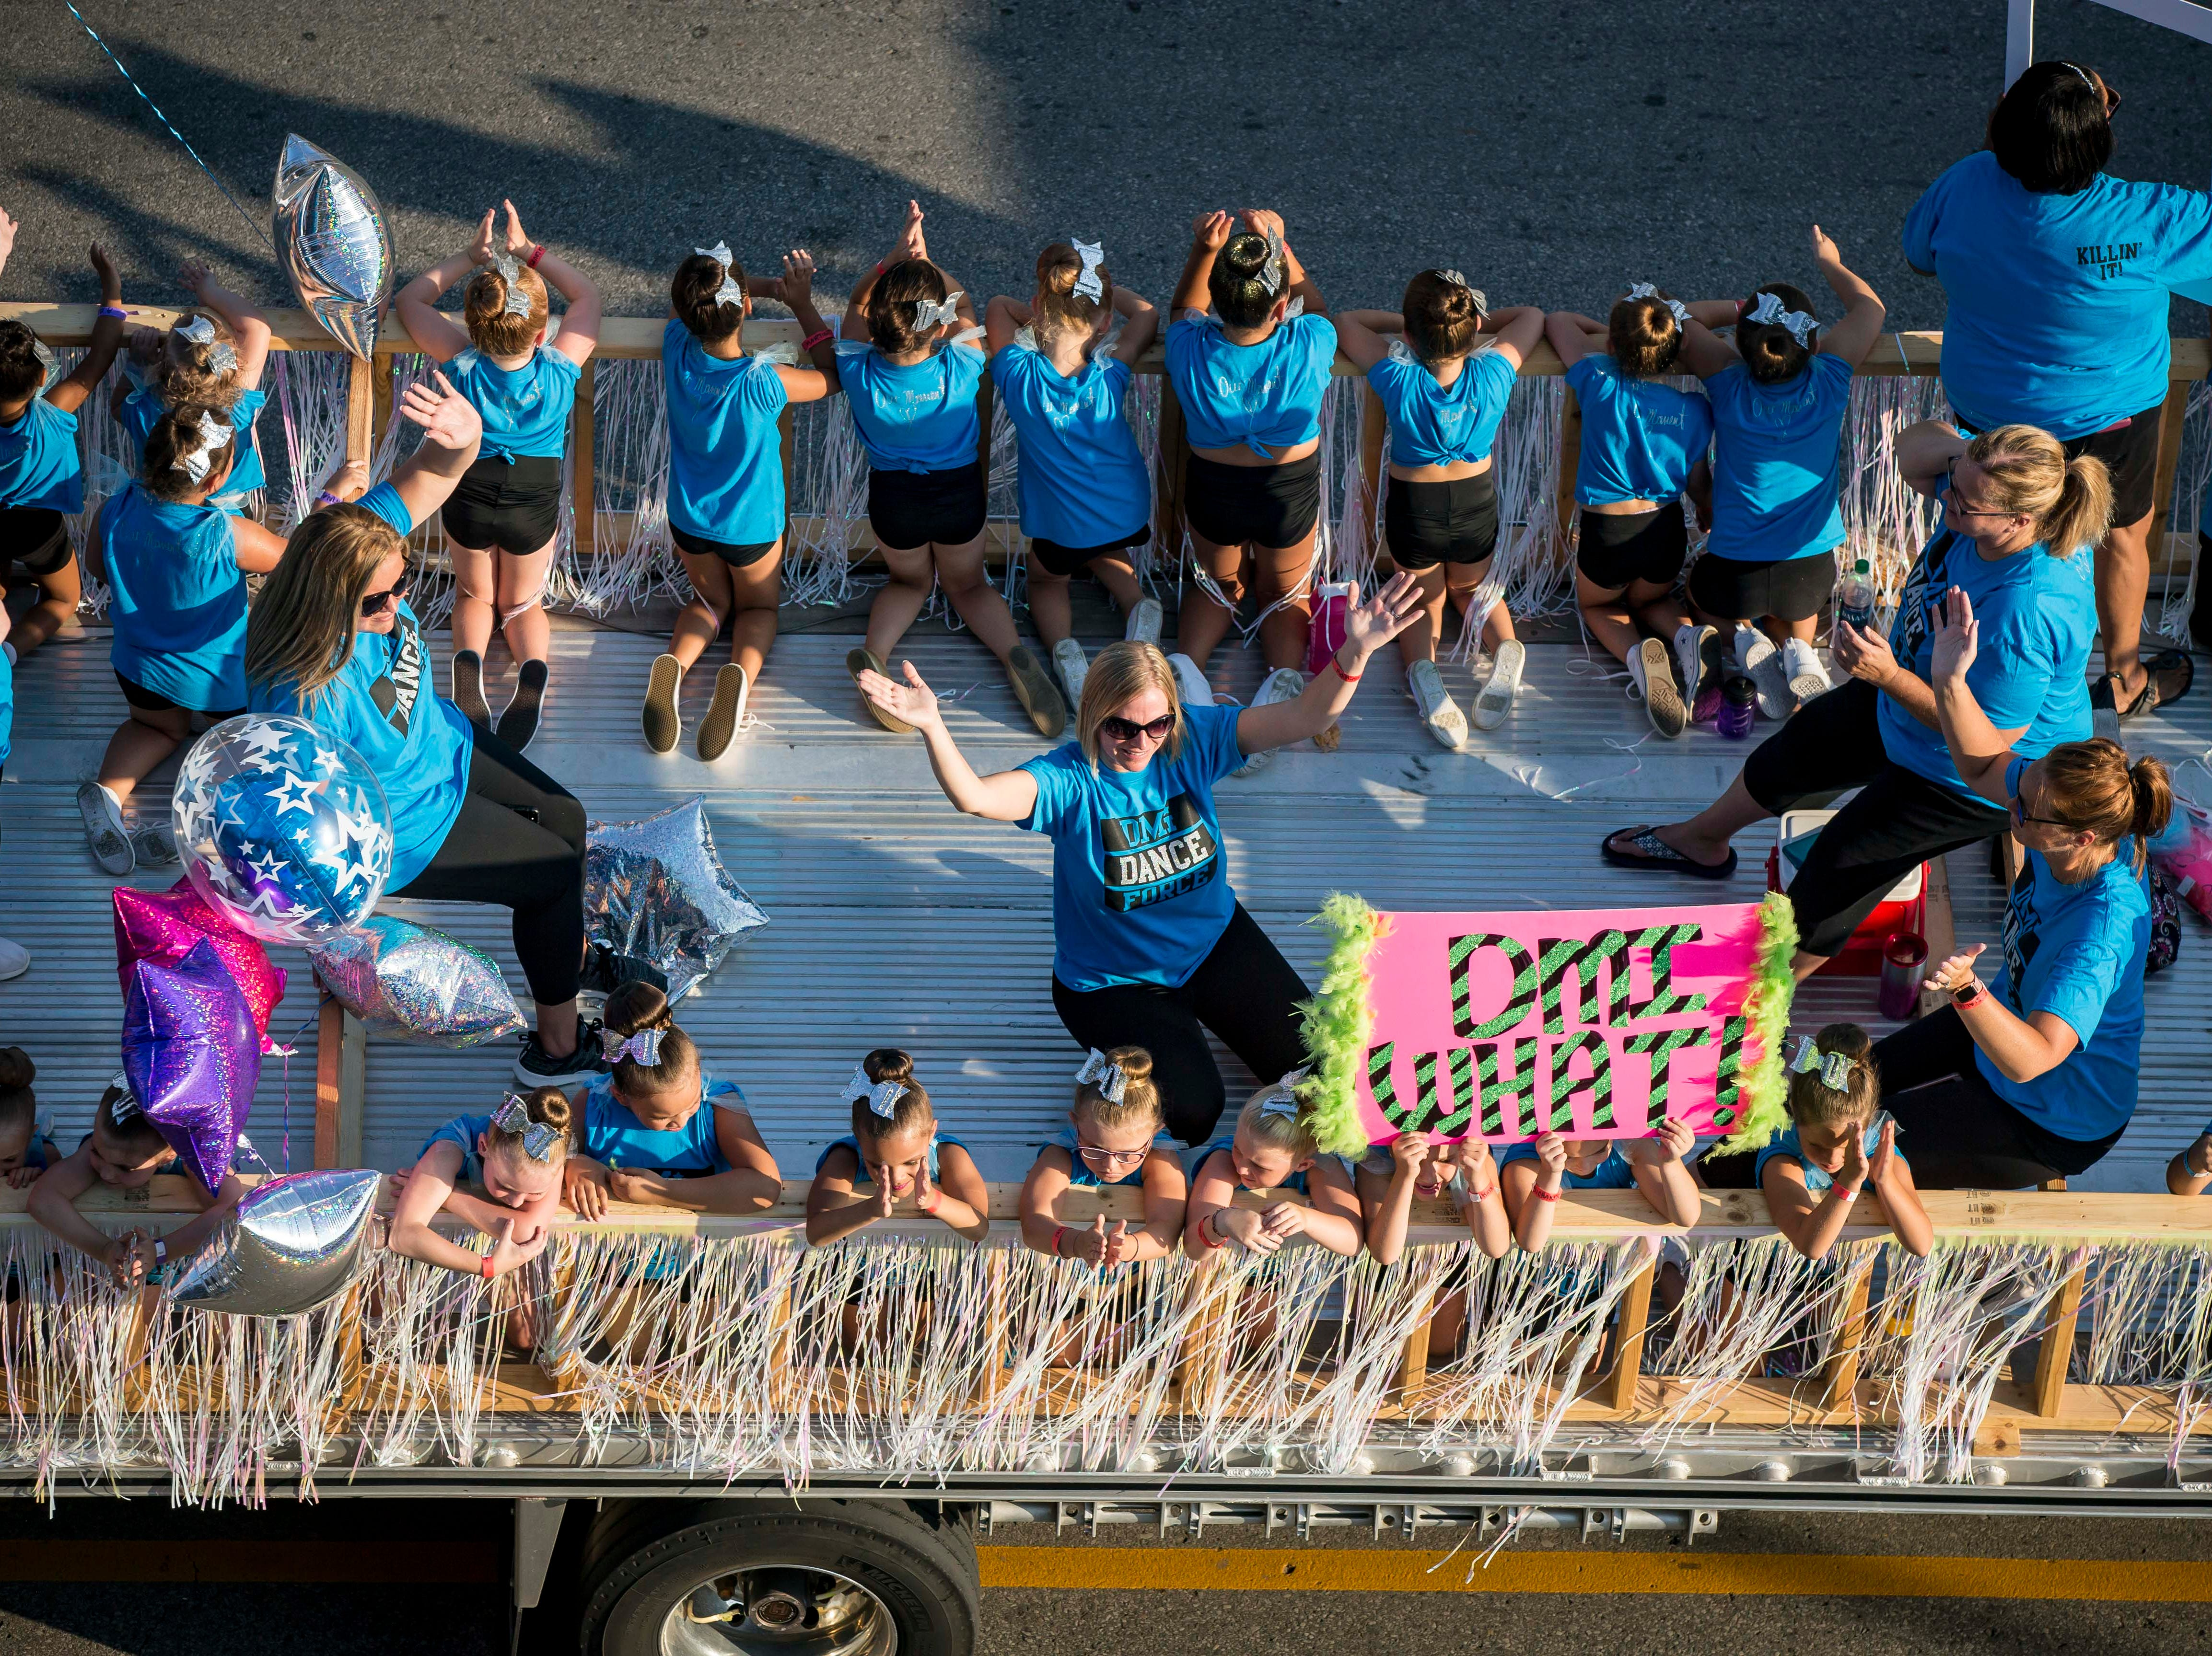 DMI Dance Force of Des Moines is represented in the 2018 Iowa State Fair parade from the Statehouse to downtown Des Moines Wednesday, Aug. 8, 2018.